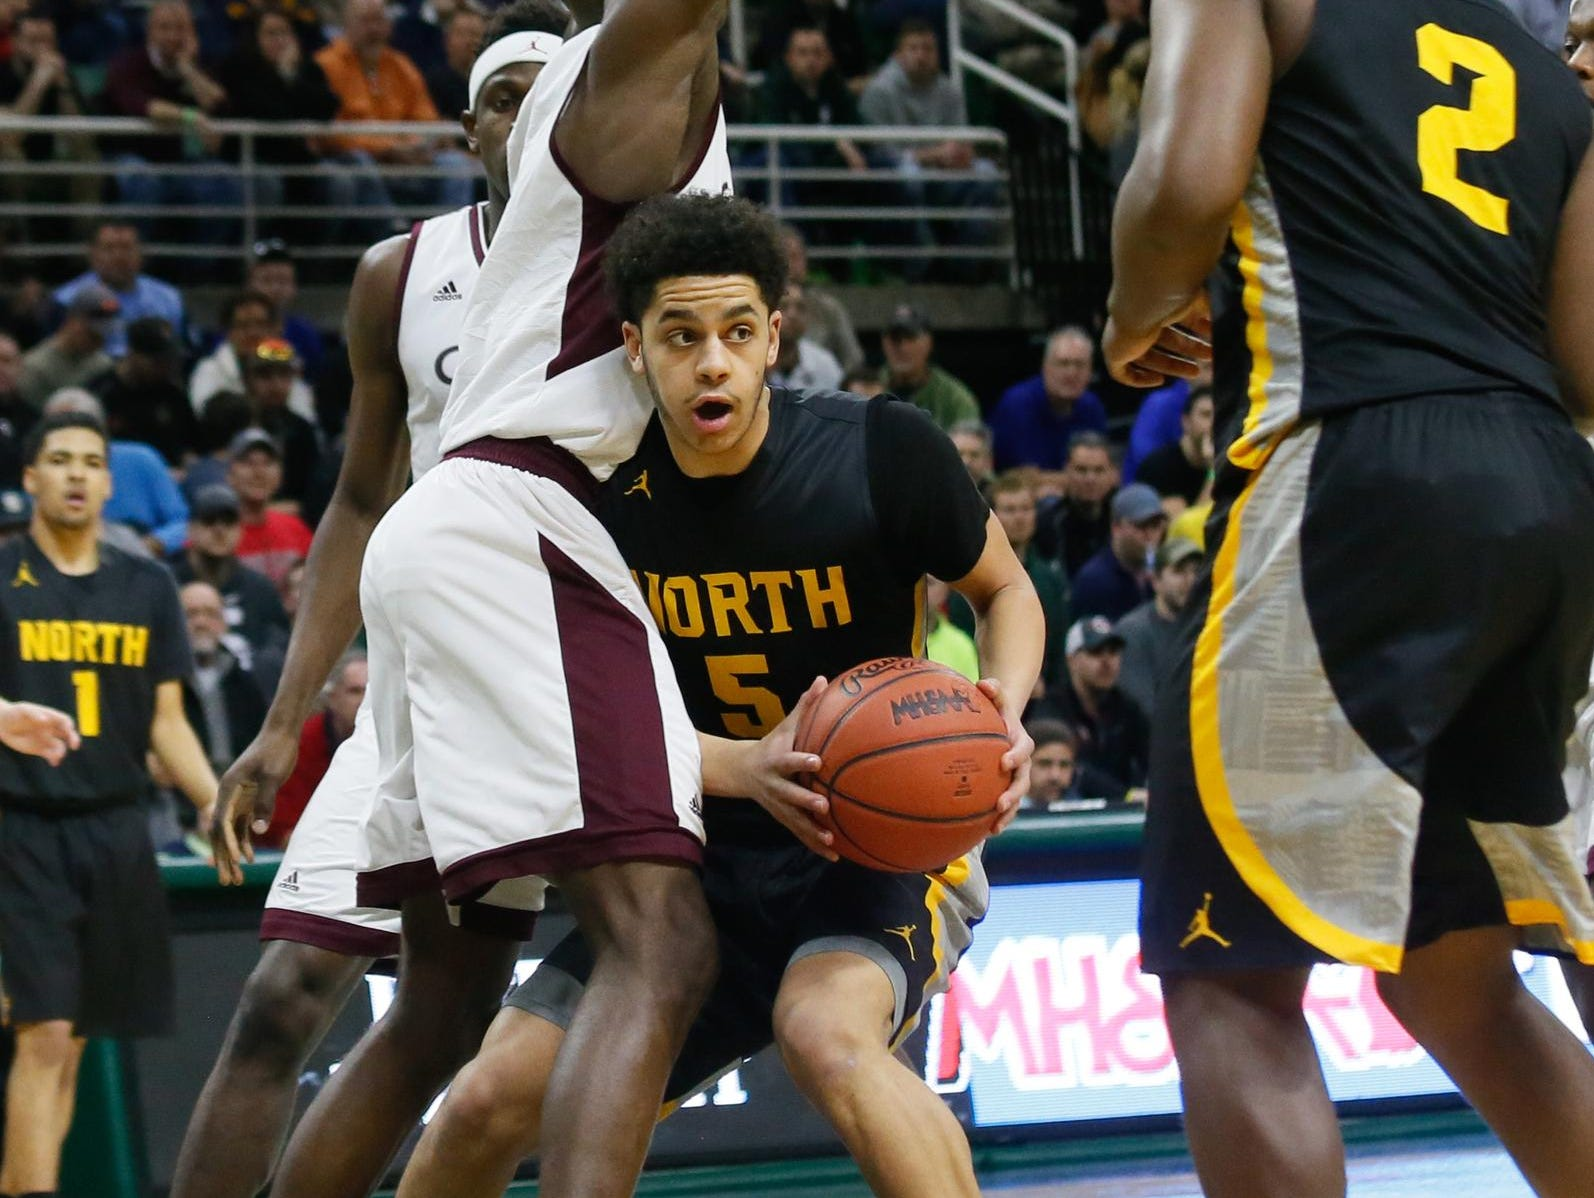 North Farmington's Jacob Joubert looks to pass the ball Saturday. His father, Antoine Joubert, also played in the state finals.